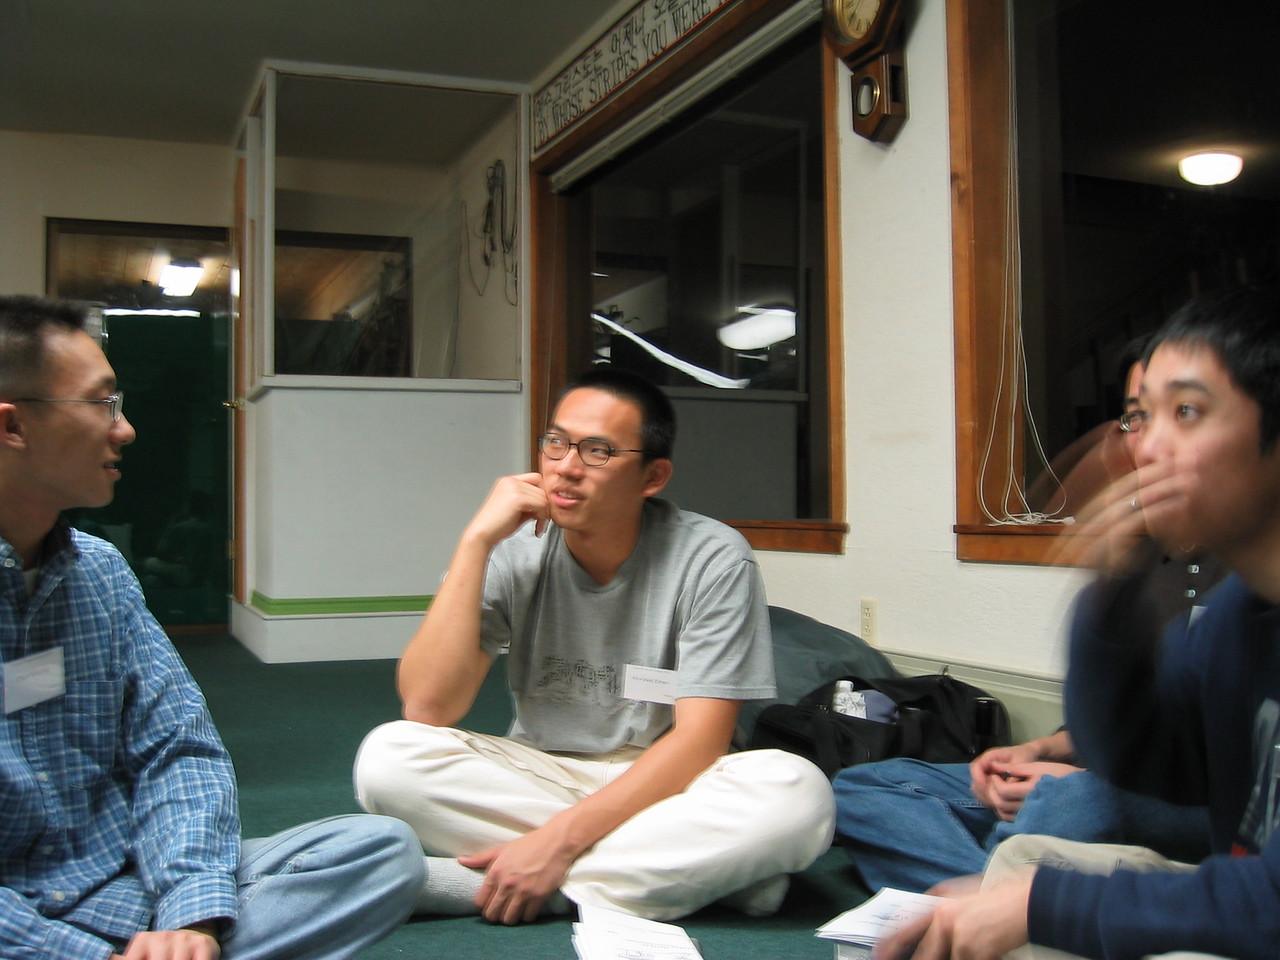 Friday Night Small Groups - Dan, Po-wei, Steve, & Andy pickin' his nose